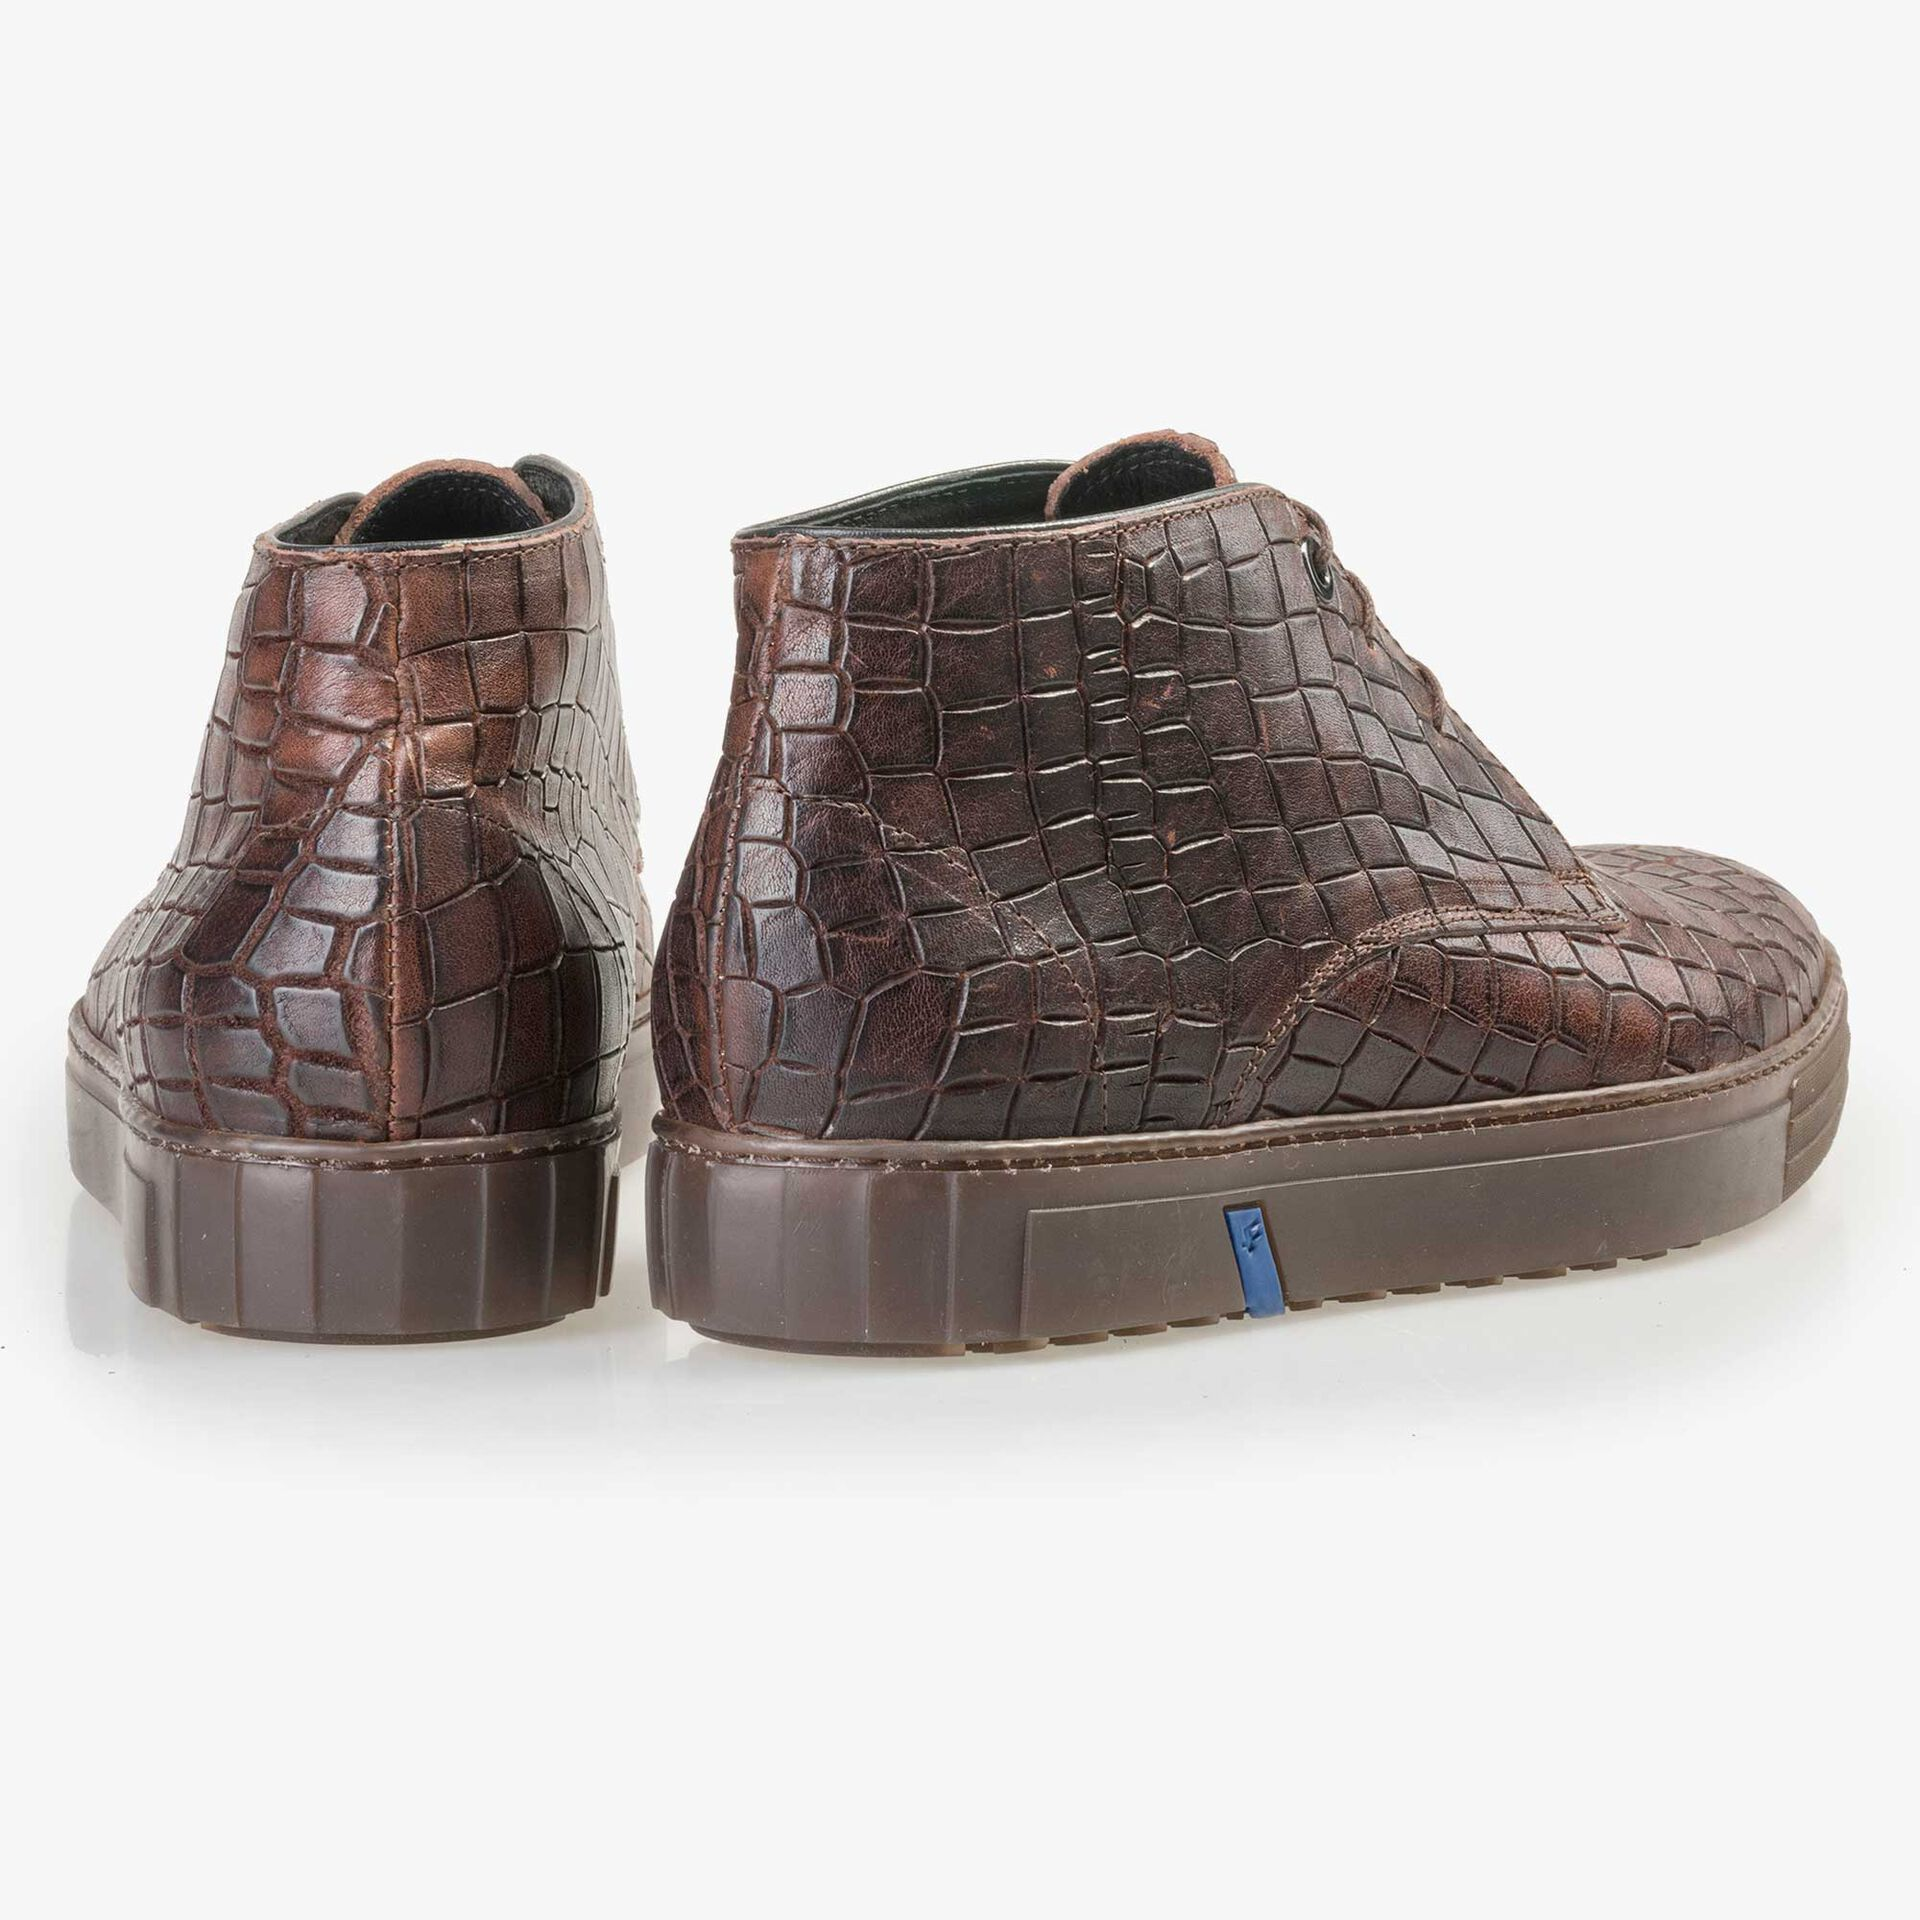 Floris van Bommel men's mid-high brown city sneaker finished with a crocodile print